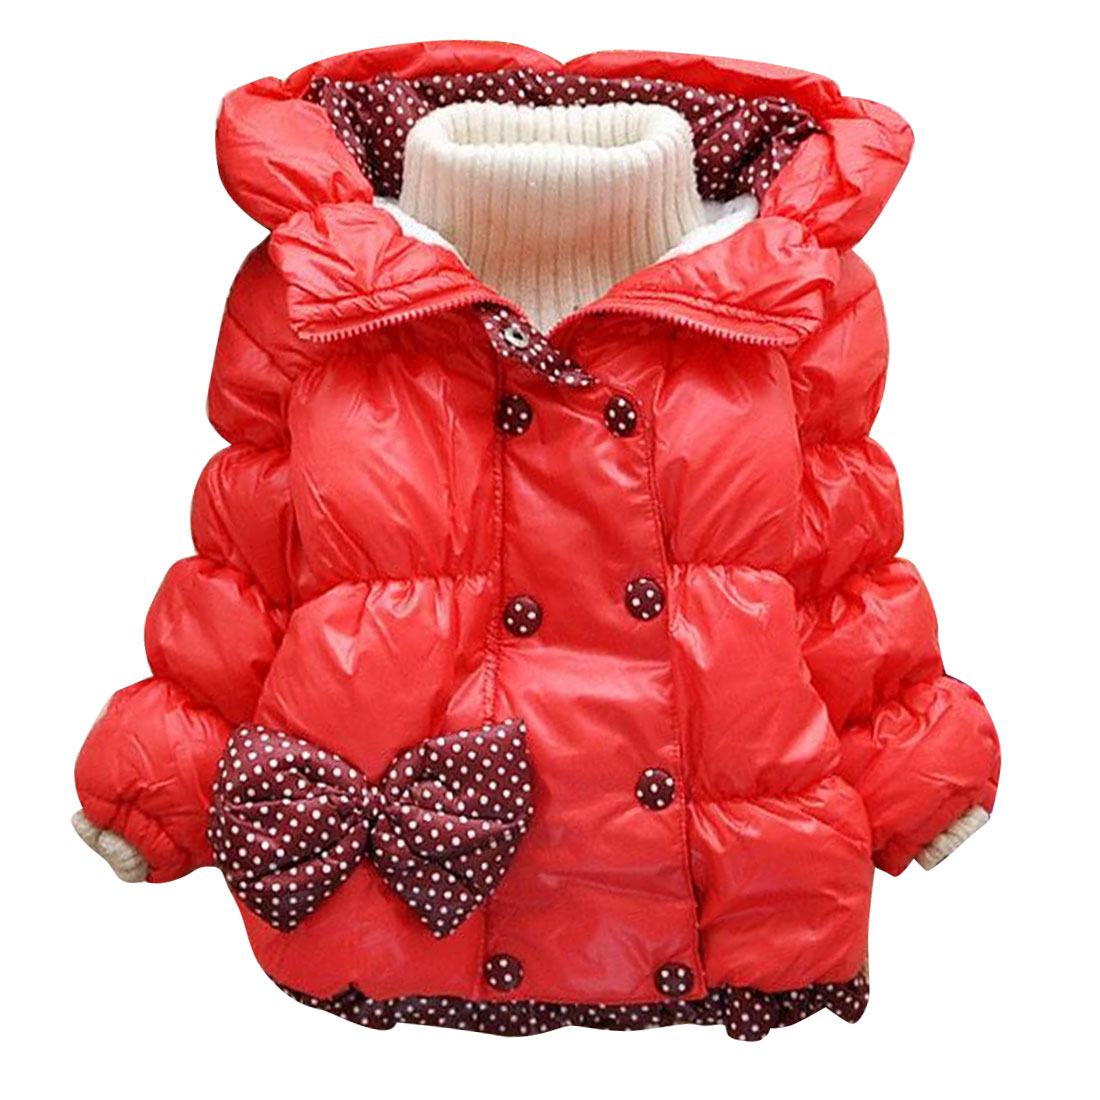 2017 New Fashion Baby Girls Winter Coat Jacket Down Children Parka Outwear Warm Cute Bowknot Princess Kids Outwear Coat ClothesОдежда и ак�е��уары<br><br><br>Aliexpress